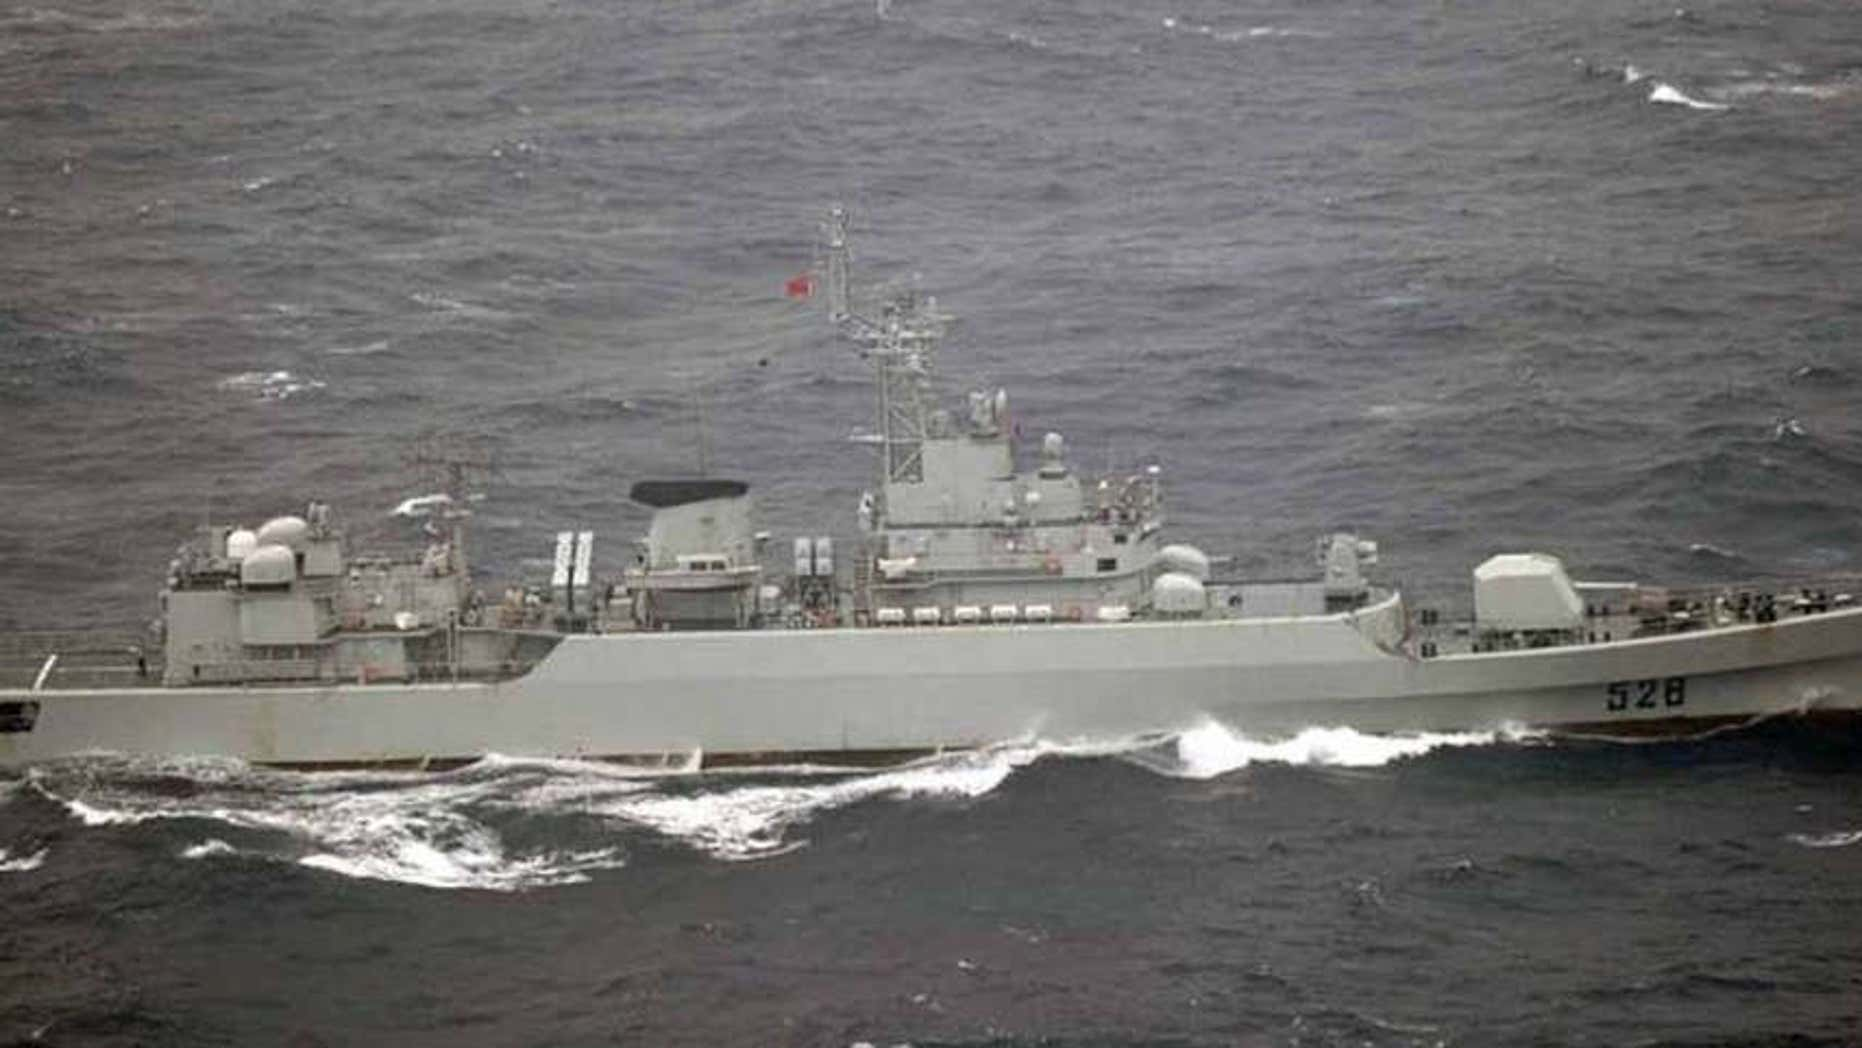 Oct. 16, 2012:  Chinese frigate sails in waters off the island of Yonaguni in Japan's Okinawa prefecture.